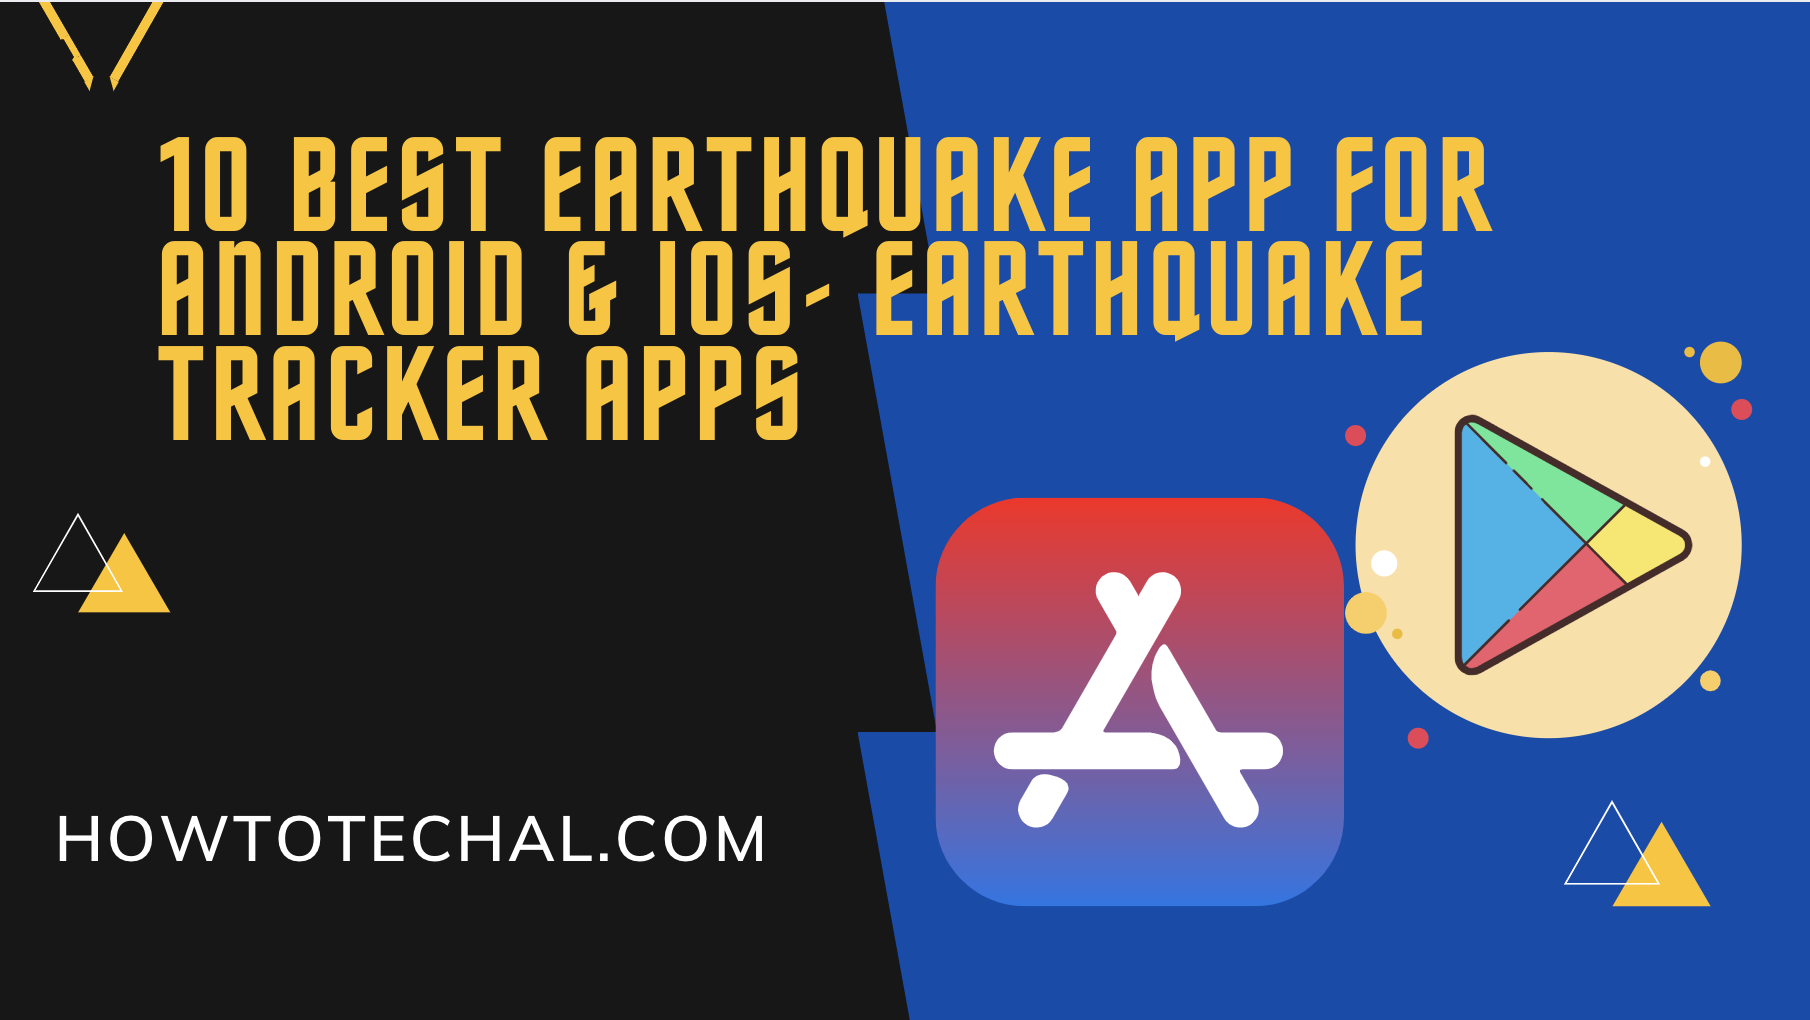 10 Best Earthquake App For Android & Ios- Earthquake Tracker Apps